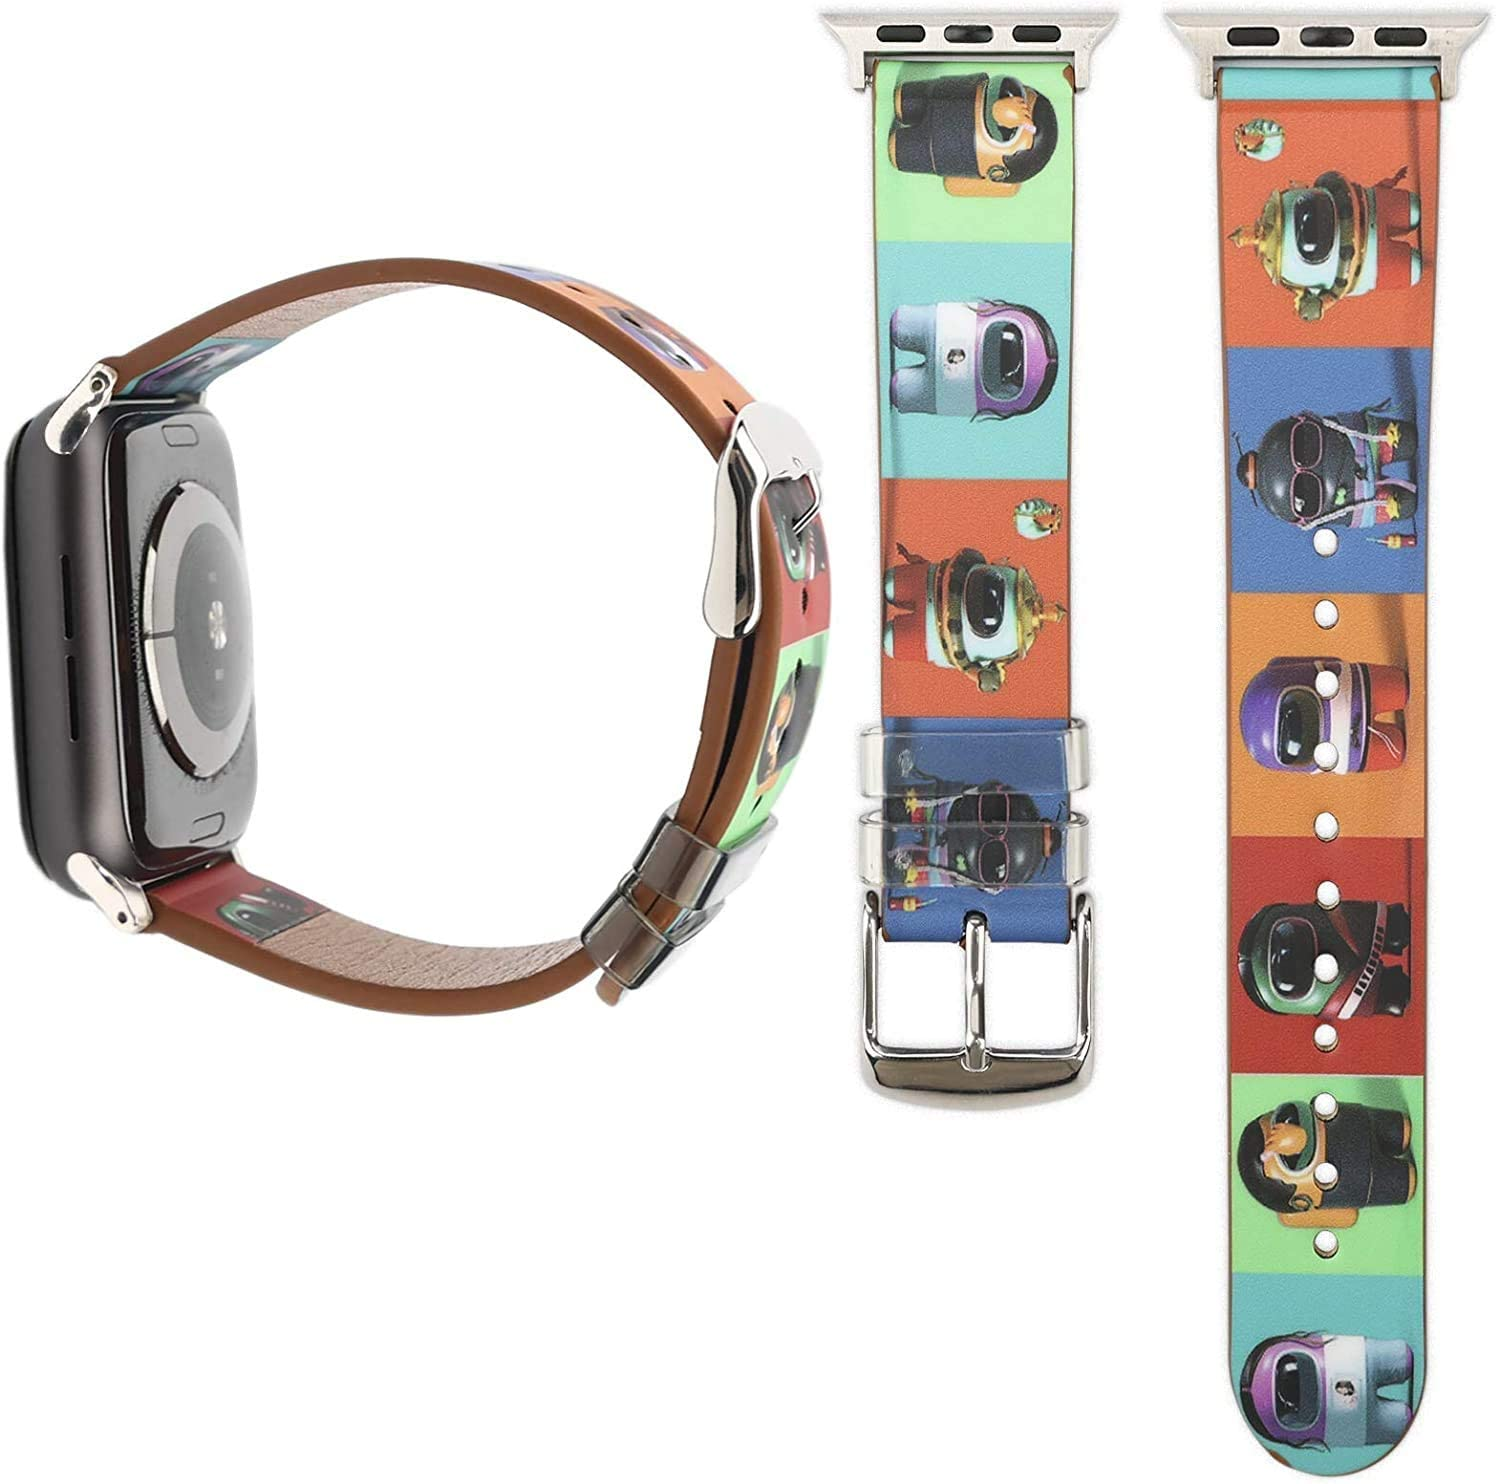 YSNUO Multicolour Women Men Baby Yoda Watch Band Compatible with Apple iWatch Band 38mm 40mm, Genuine Leather Replacement Strap, for iWatch 6 SE Series 5 4 3 2 1, Cute Strap + Silver Adapter